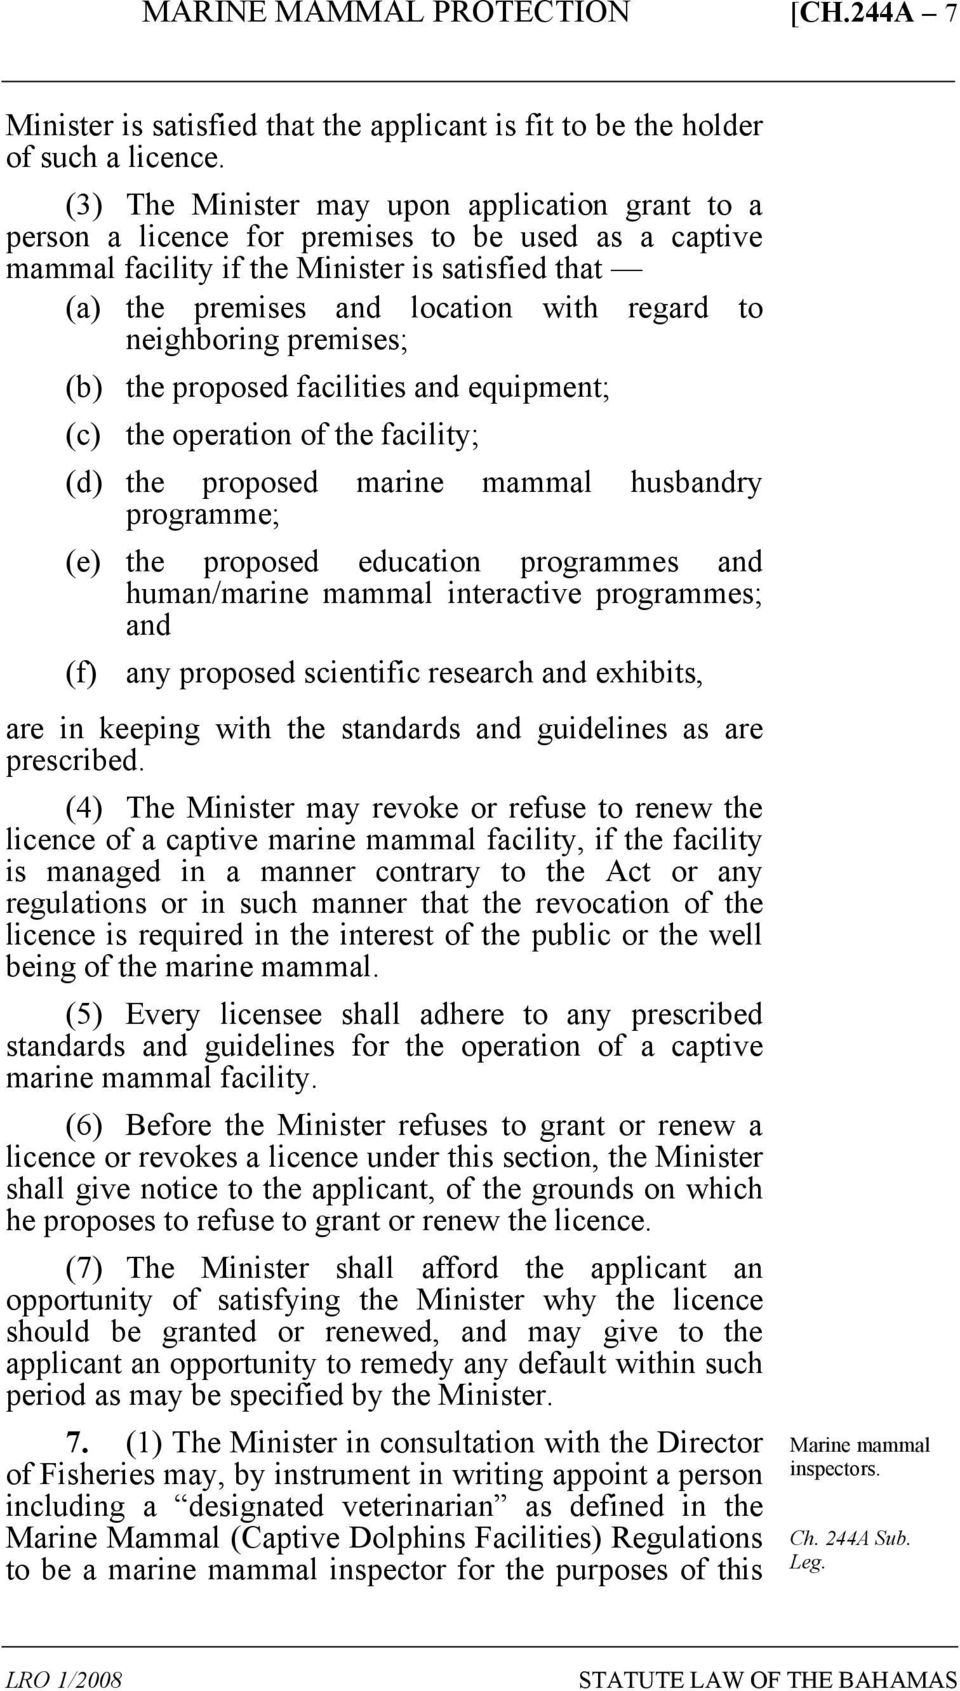 neighboring premises; (b) the proposed facilities and equipment; (c) the operation of the facility; (d) the proposed marine mammal husbandry programme; (e) the proposed education programmes and